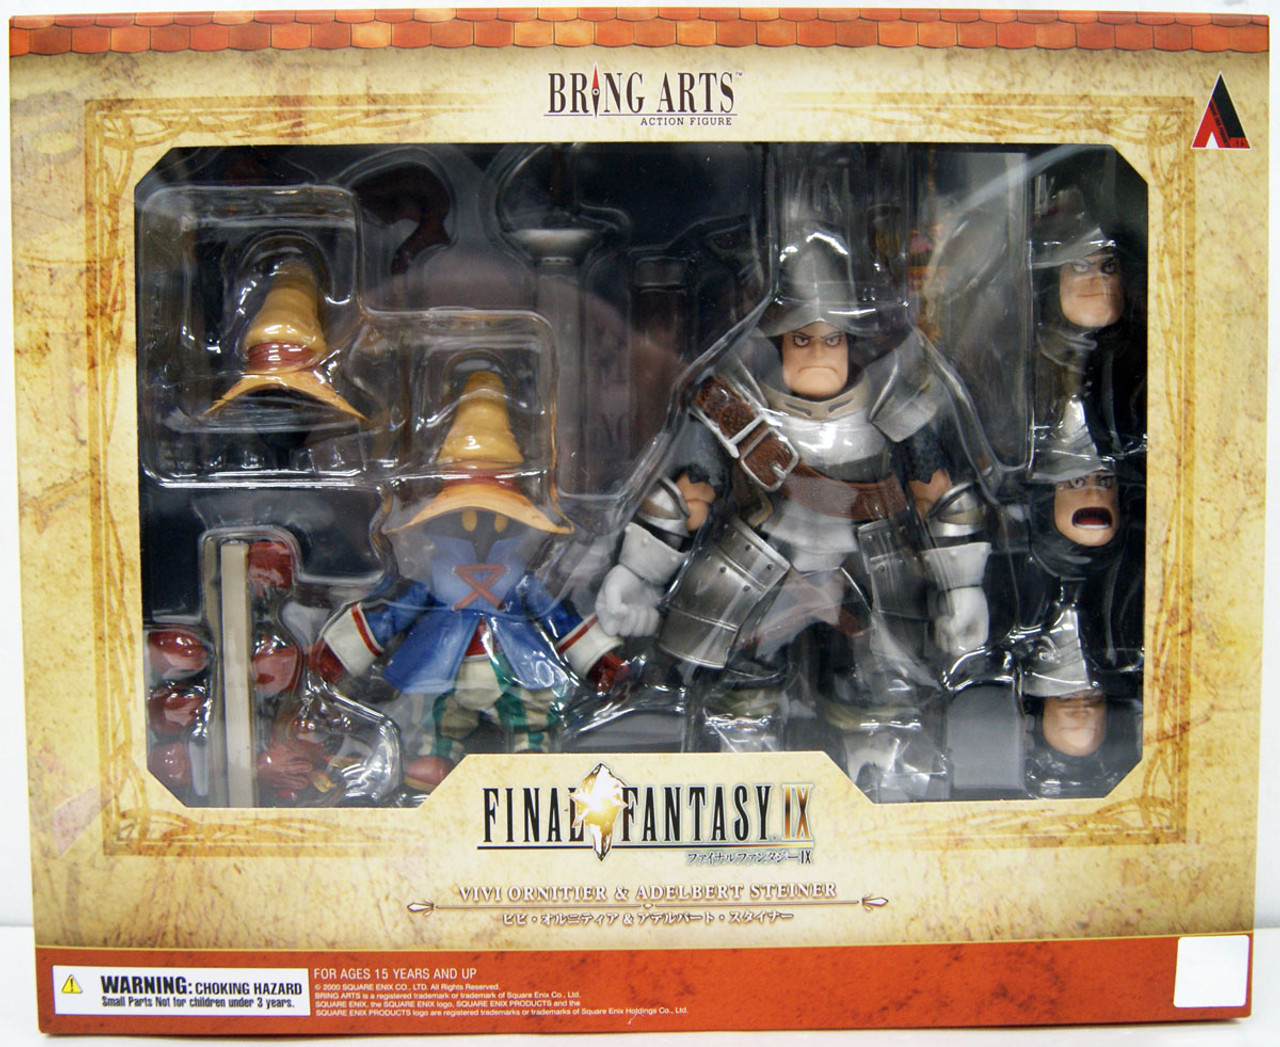 Action Figure New In Box Bring Arts Square Enix Final Fantasy Sephiroth